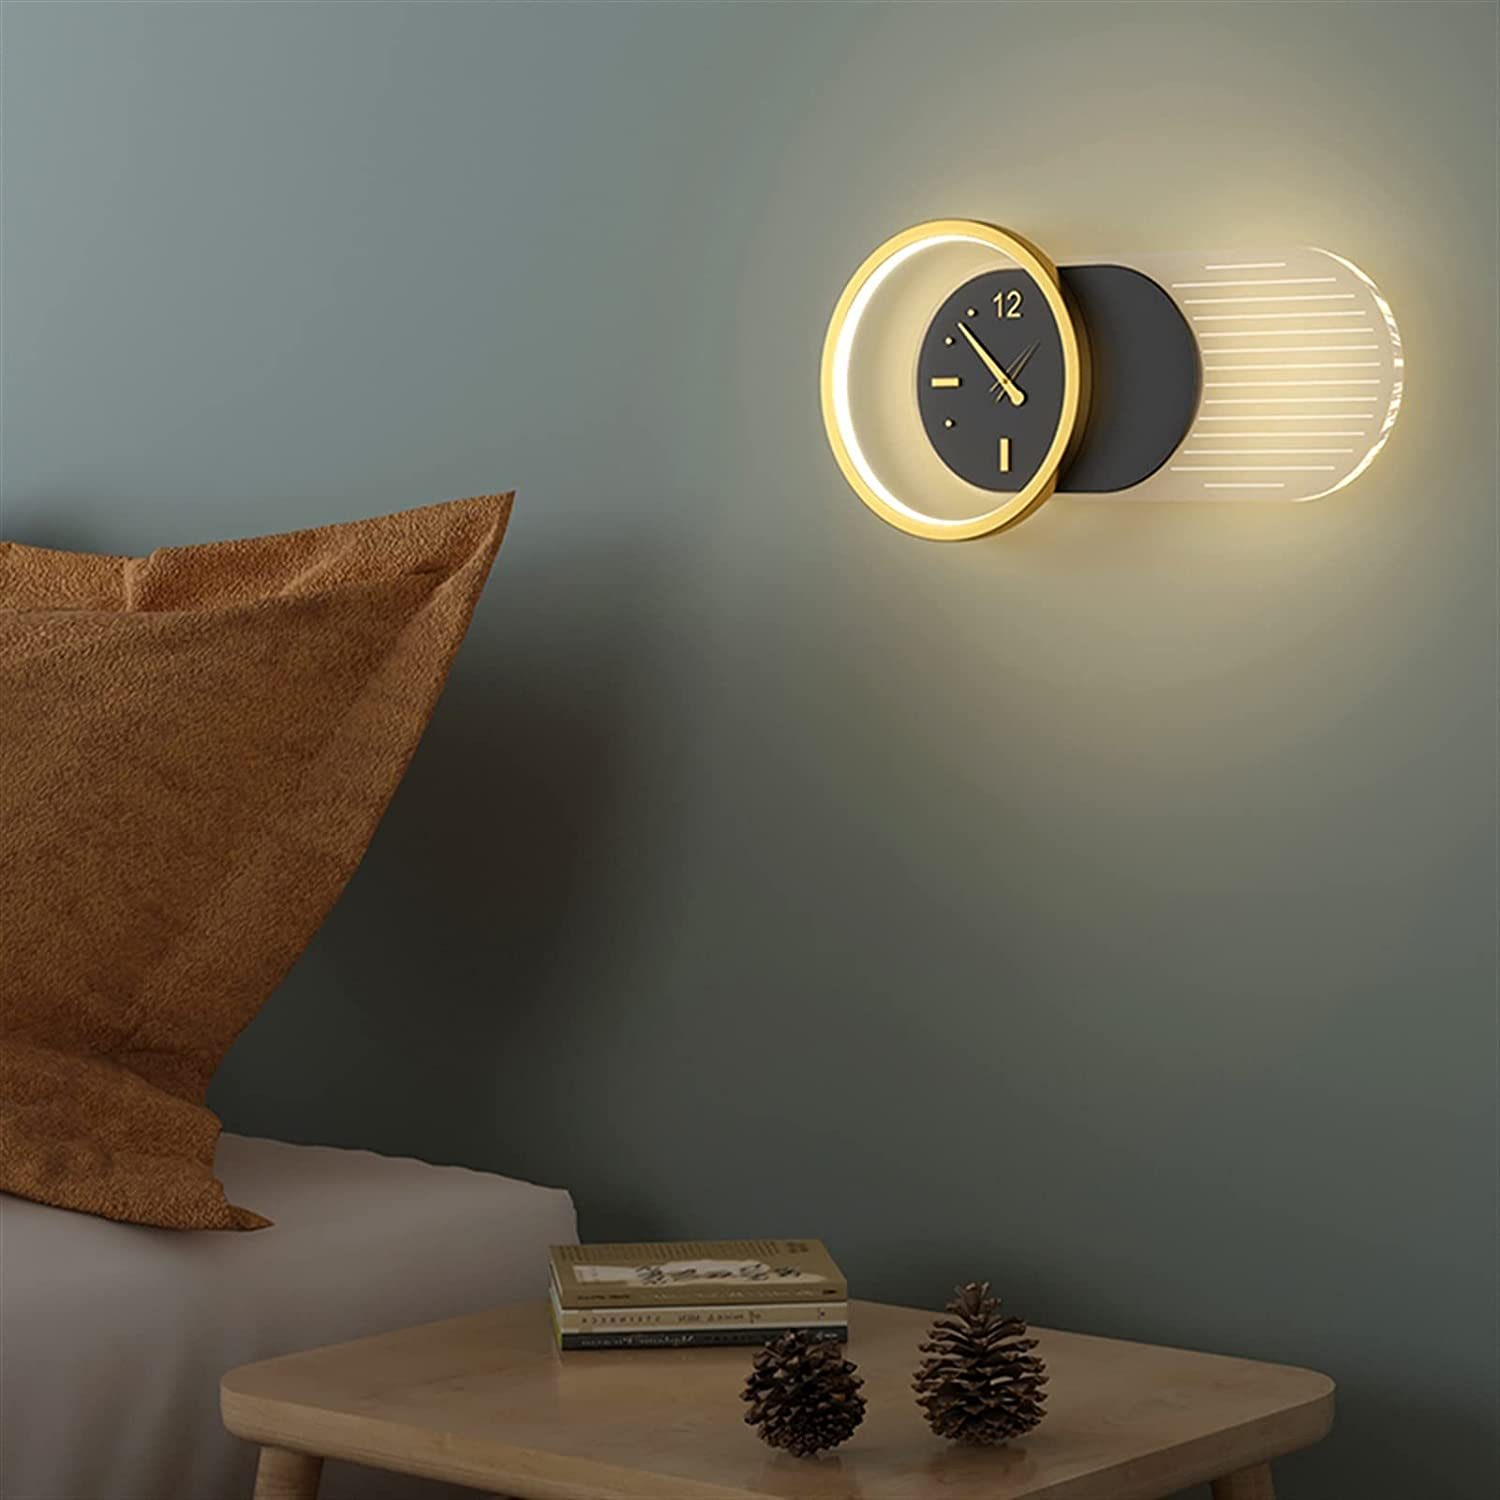 GZXYKJ Max 71% OFF Max 49% OFF Wall lamp Led Lights Living Room Bedroo Lighting for